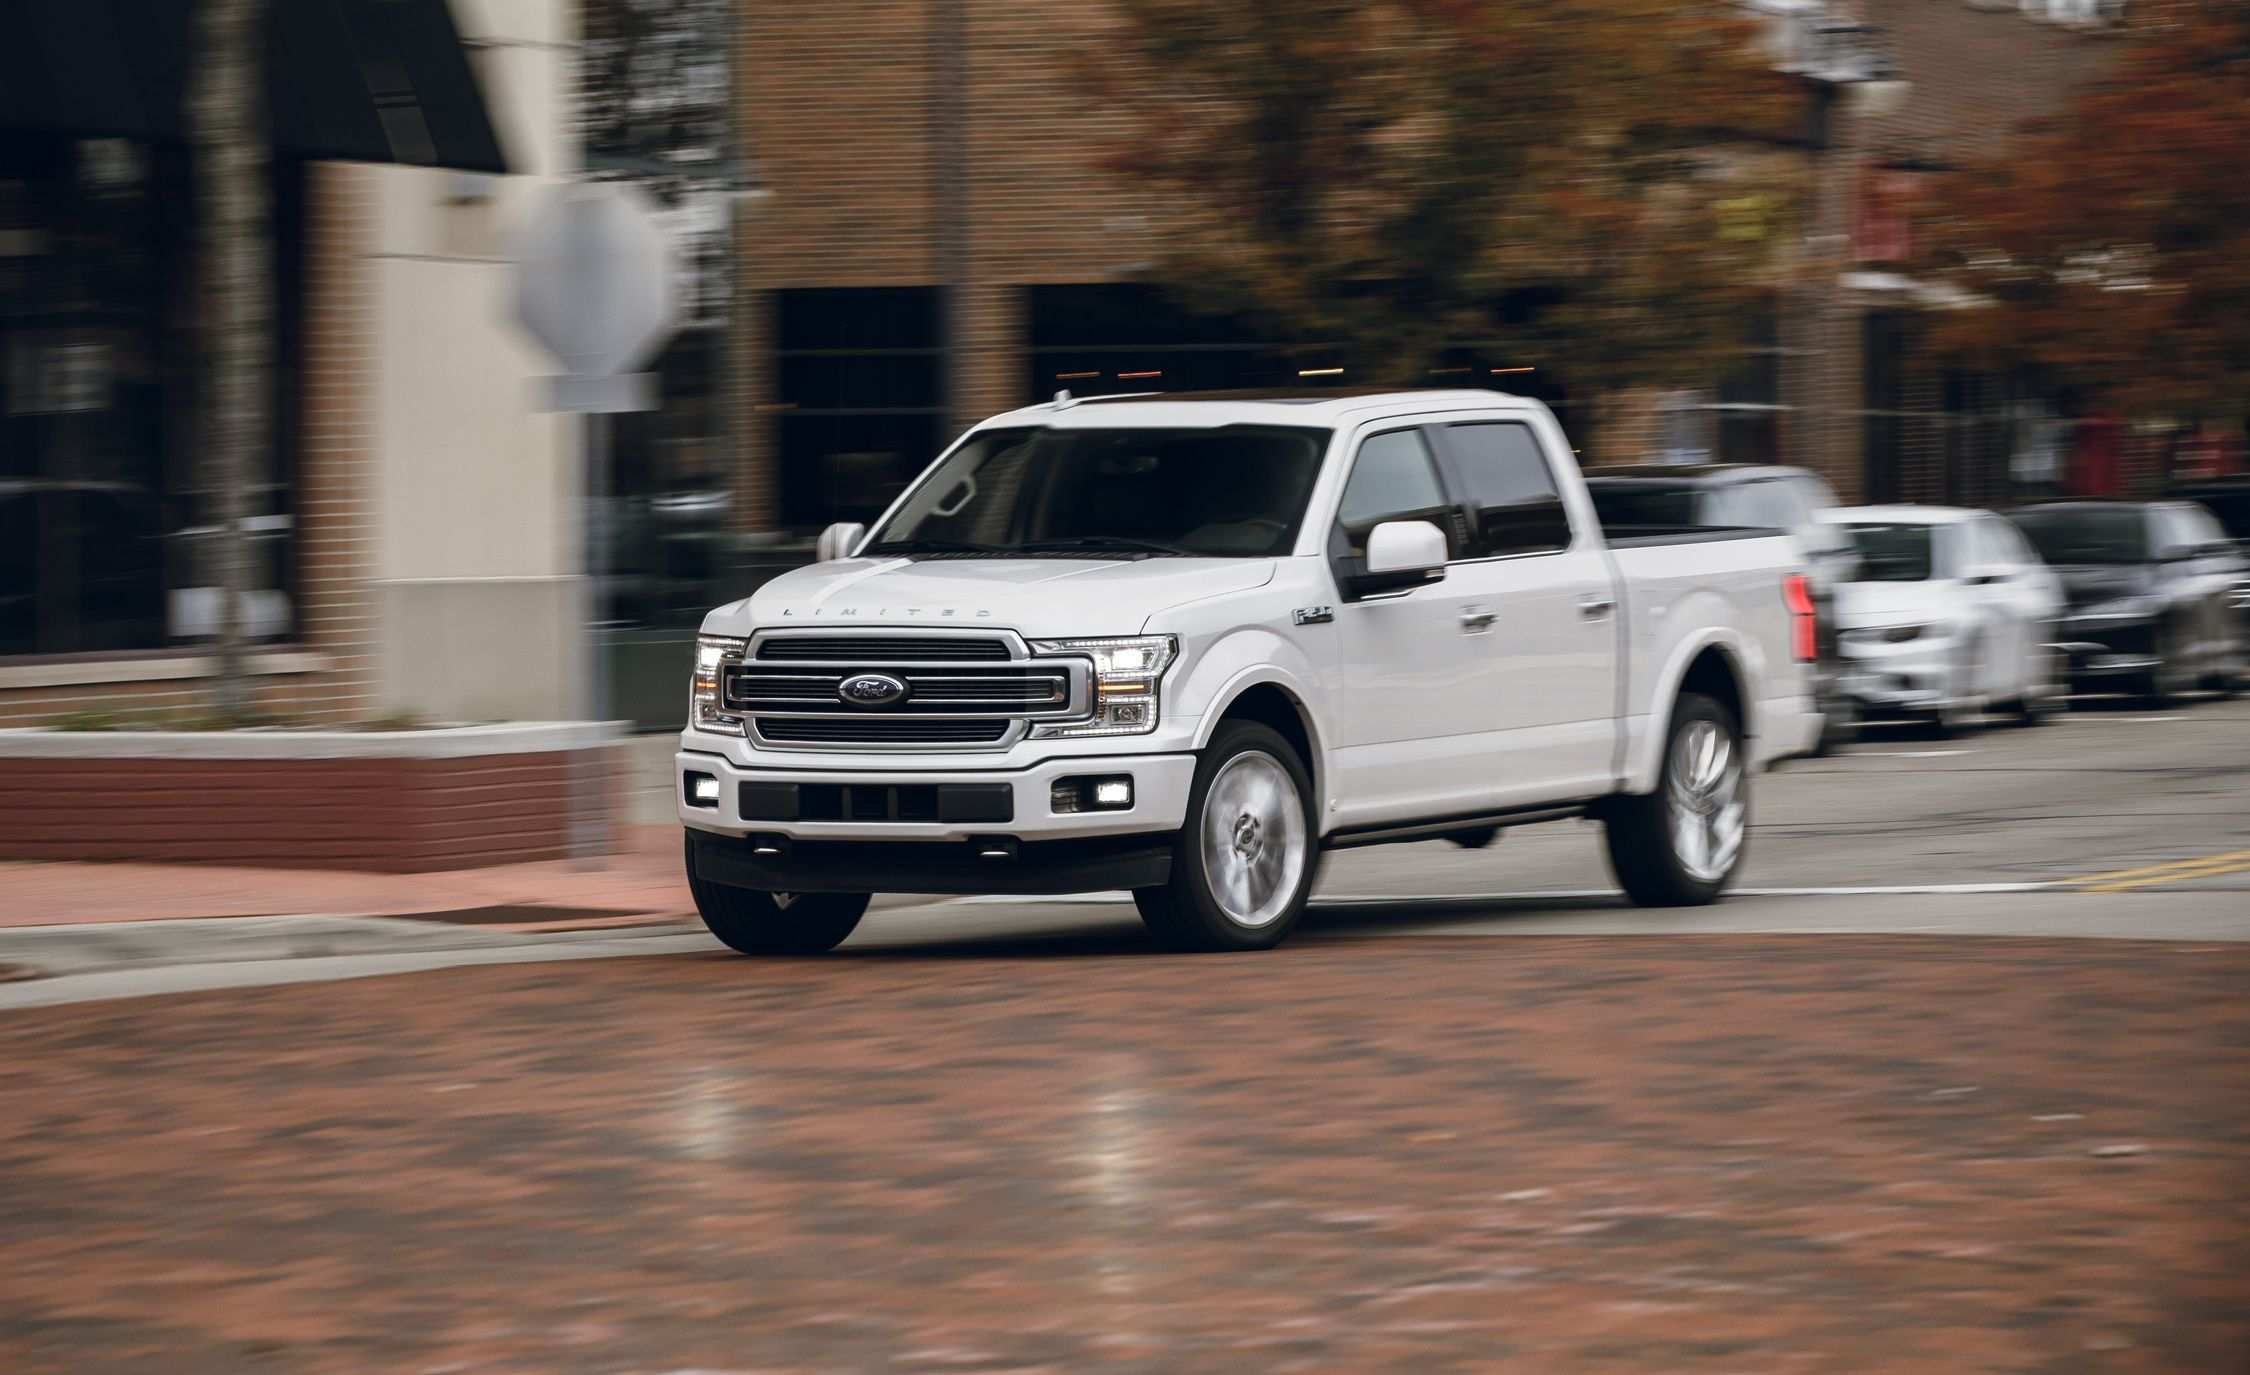 53 All New The Ford Lariat 2019 Performance Redesign and Concept for The Ford Lariat 2019 Performance